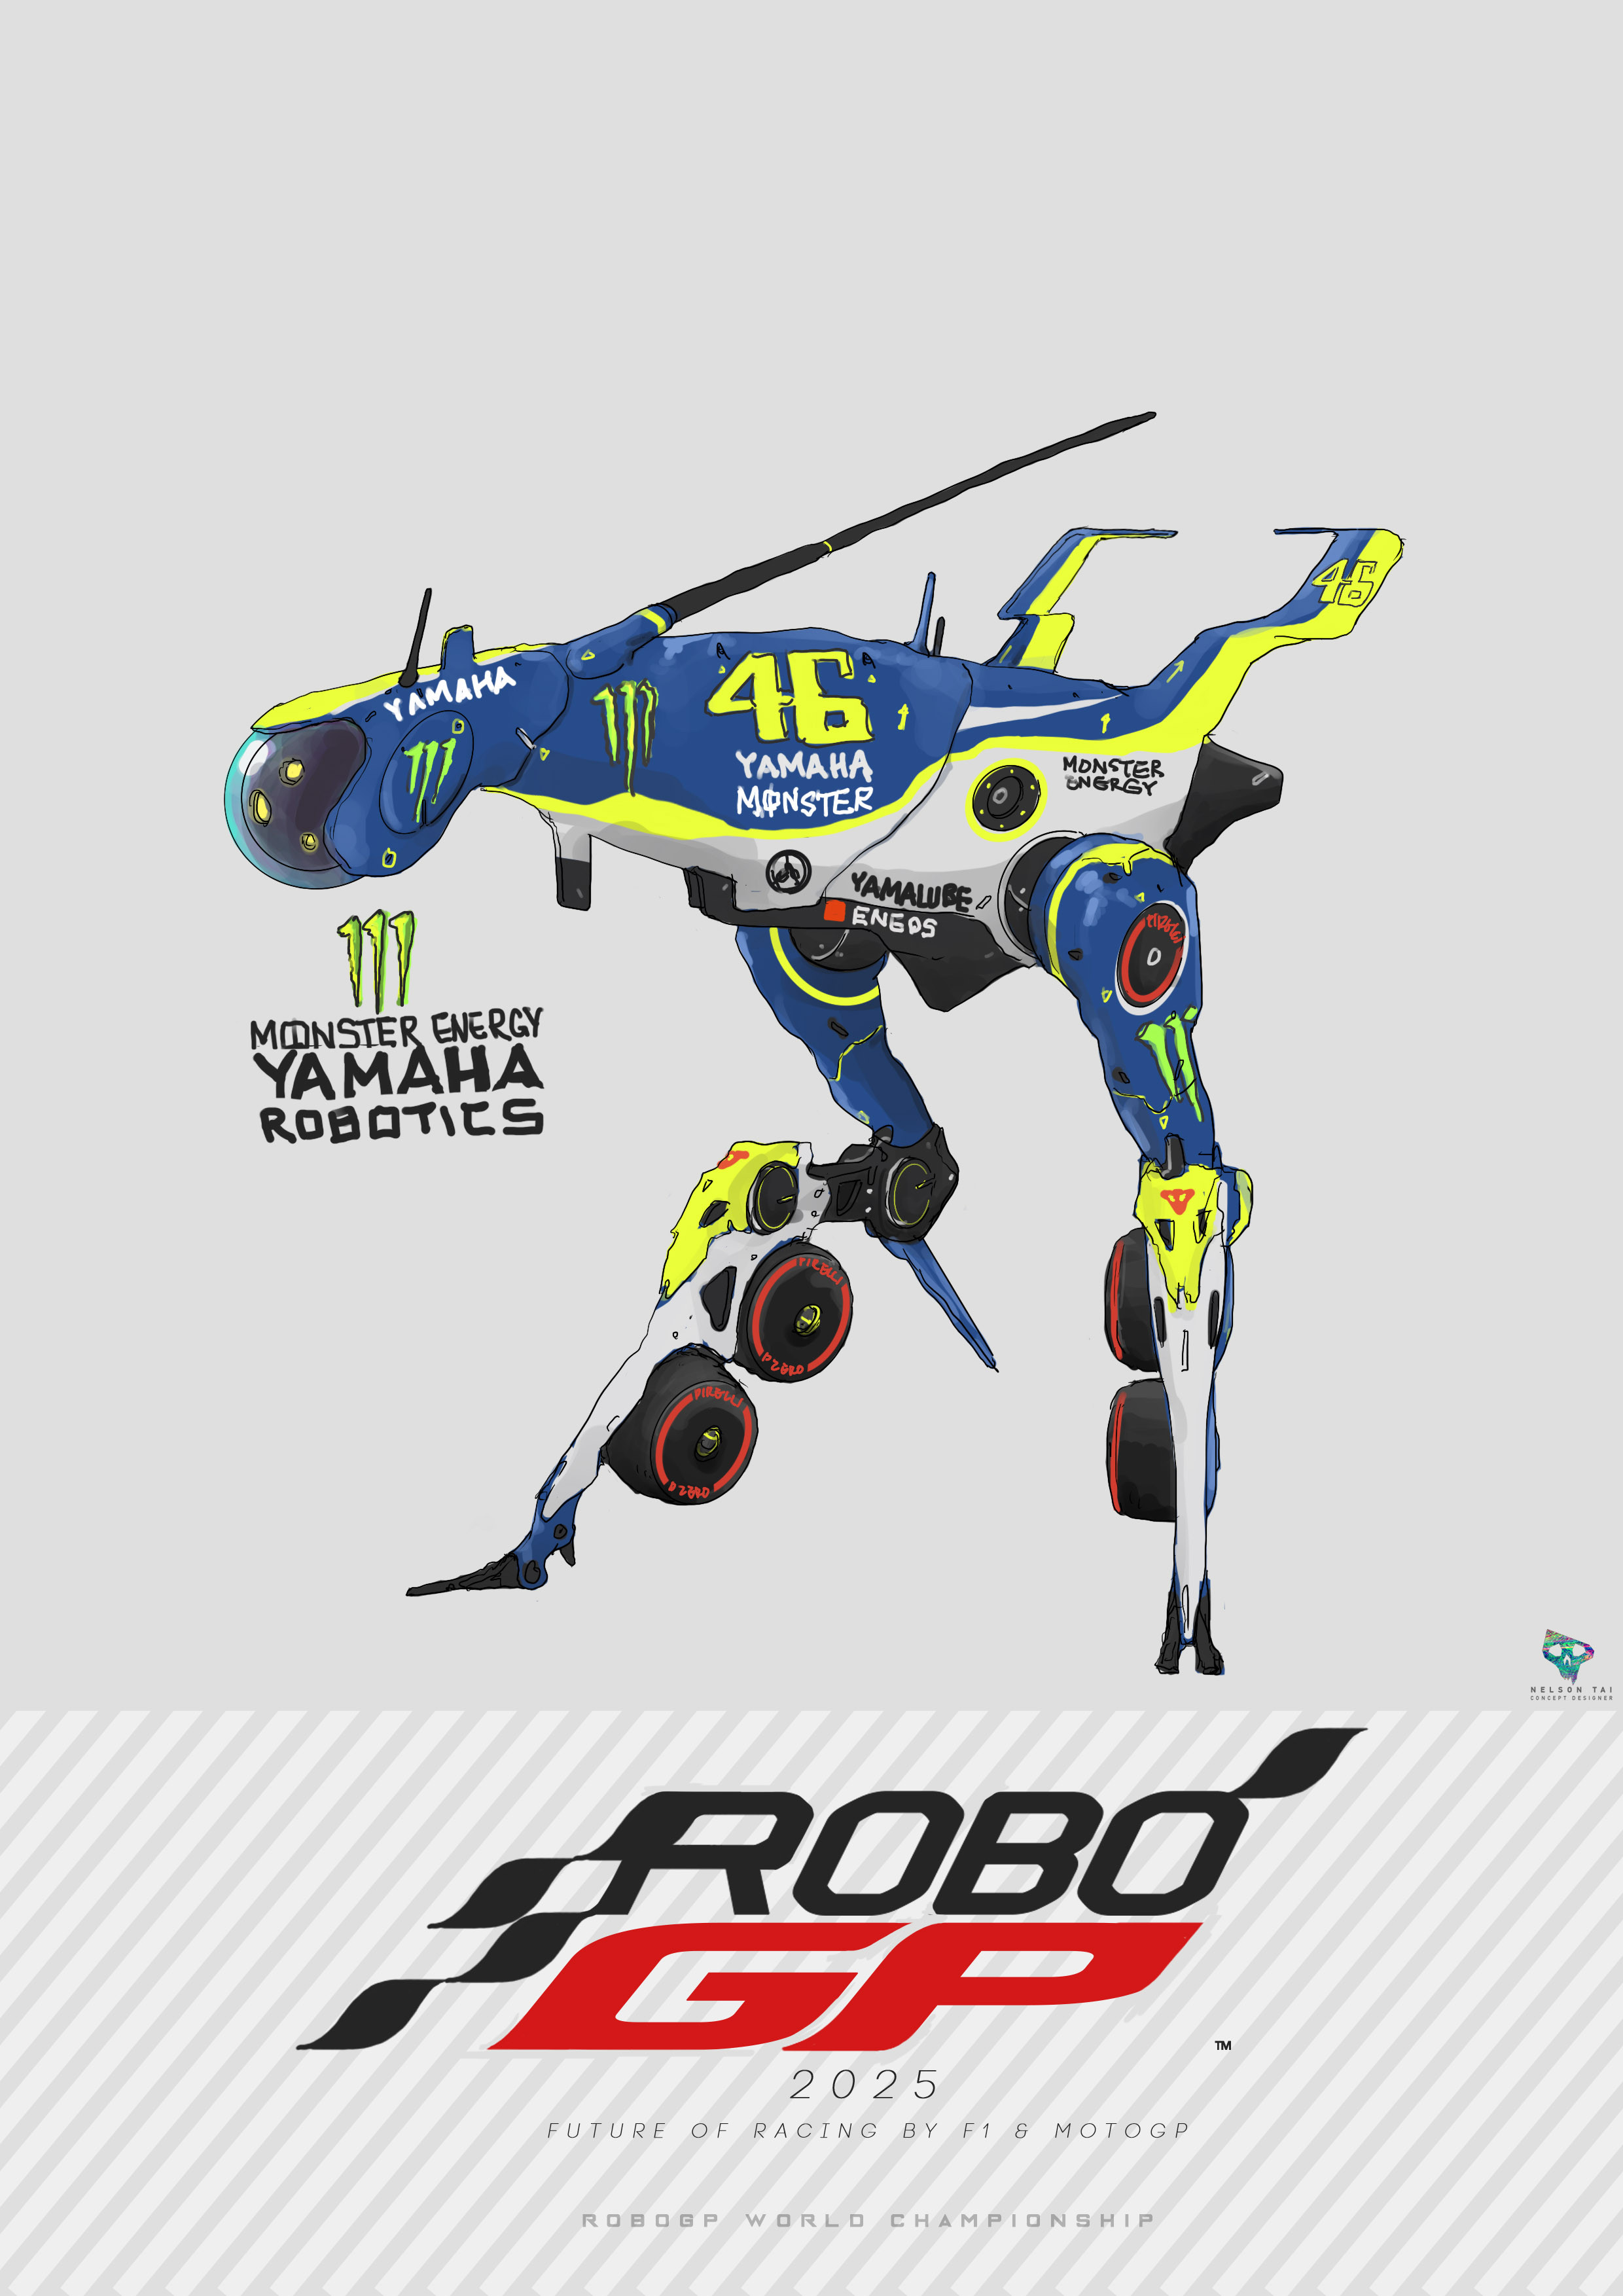 Monster Energy Yamaha Robotics | Runs on the data of the GOAT - Valentino Rossi!